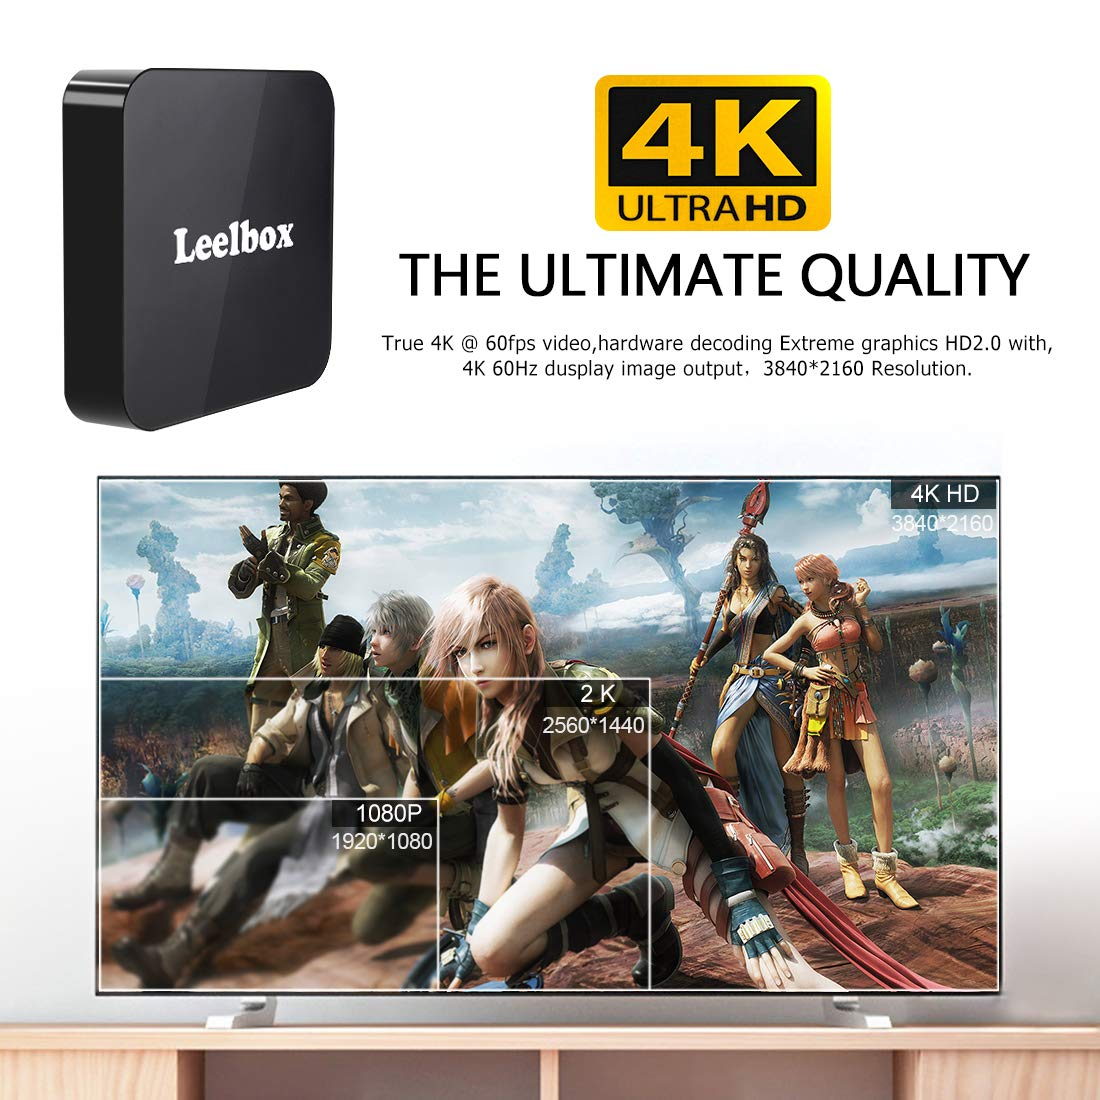 Android 8.1 TV Box, 2018 Leelbox Q2 Android Box Quad Core with 2GB RAM 16GB ROM, 2.4G Voice Remote Control Included, Support WiFi/3D/4K/H.265 by Leelbox (Image #6)